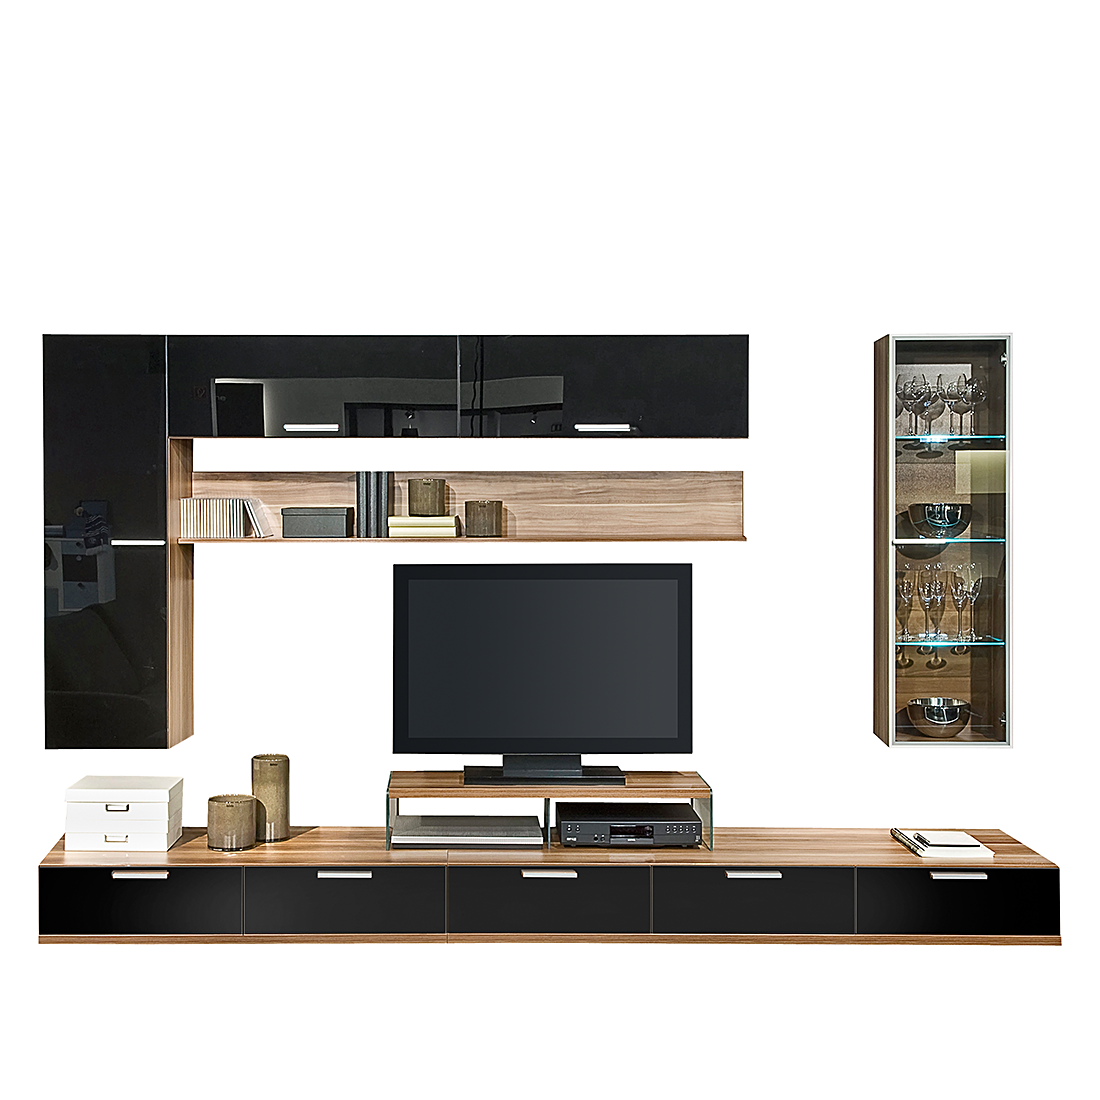 wohnwand schwarz glas hochglanz led b h t ca 280x190x45 cm korpus. Black Bedroom Furniture Sets. Home Design Ideas